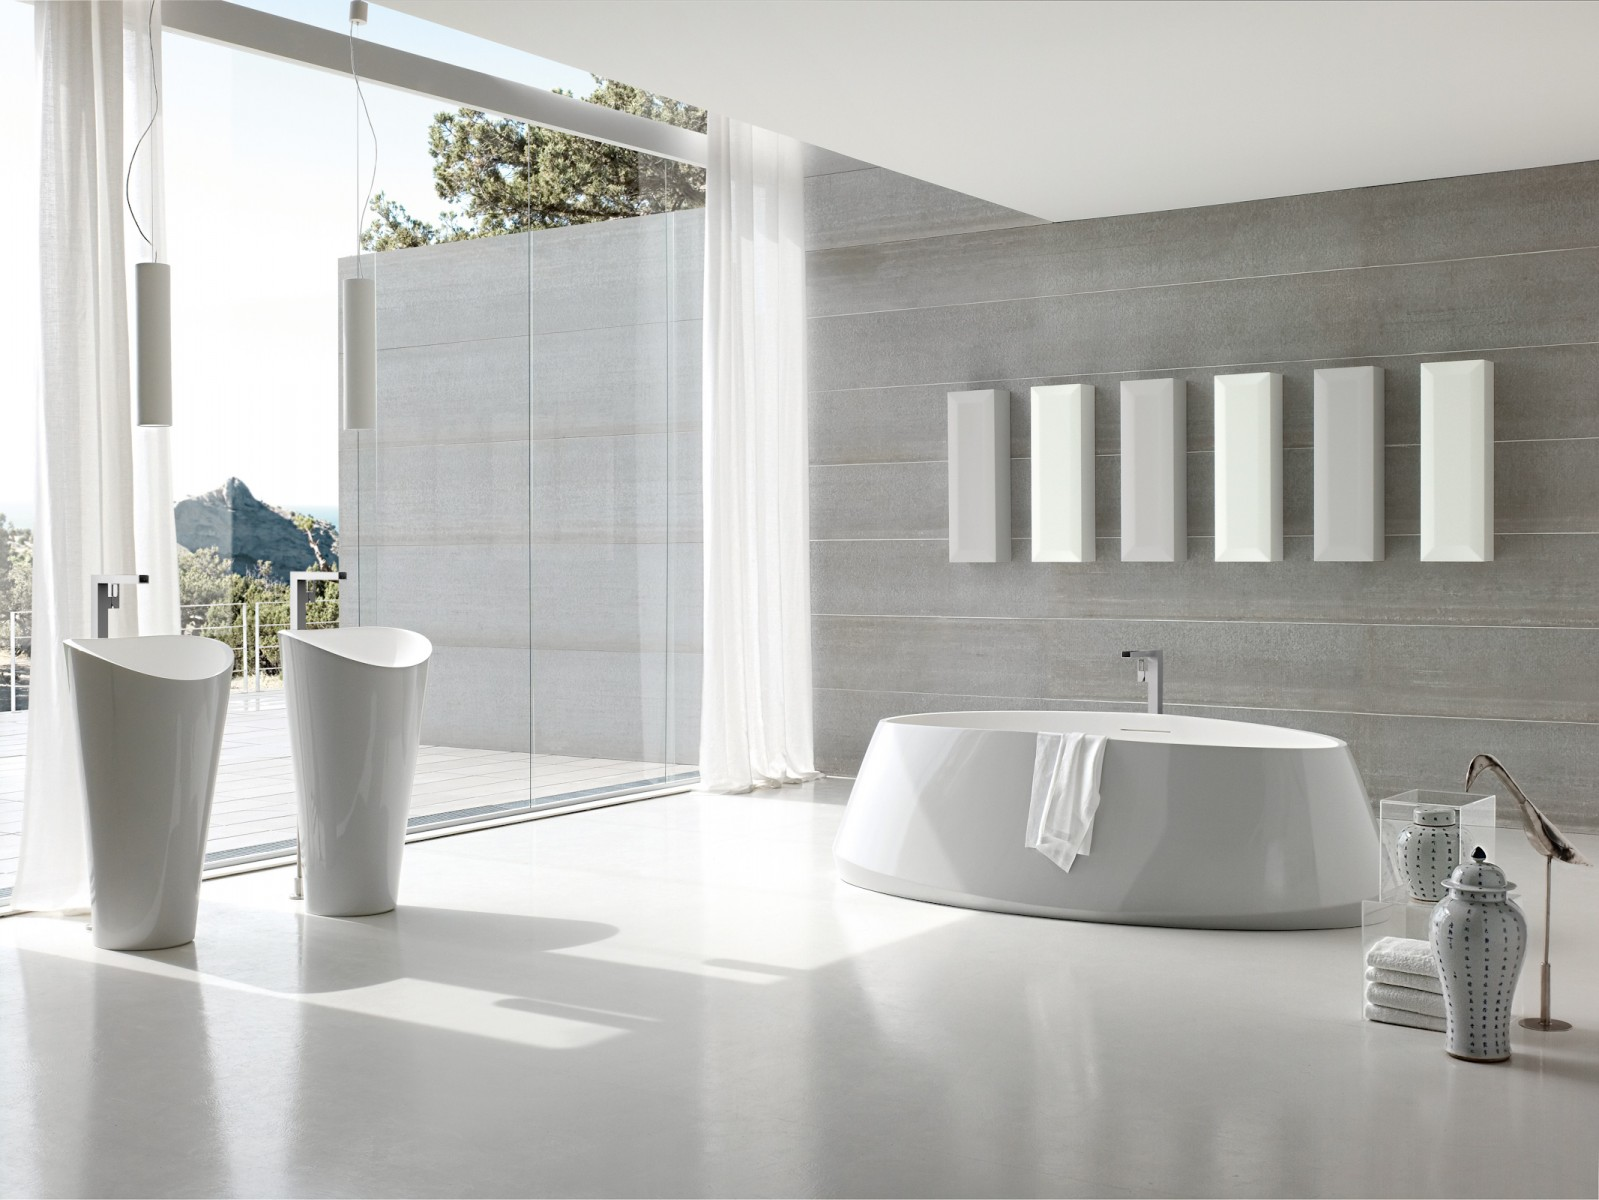 ultra modern italian bathroom design - Bathroom Design Photos